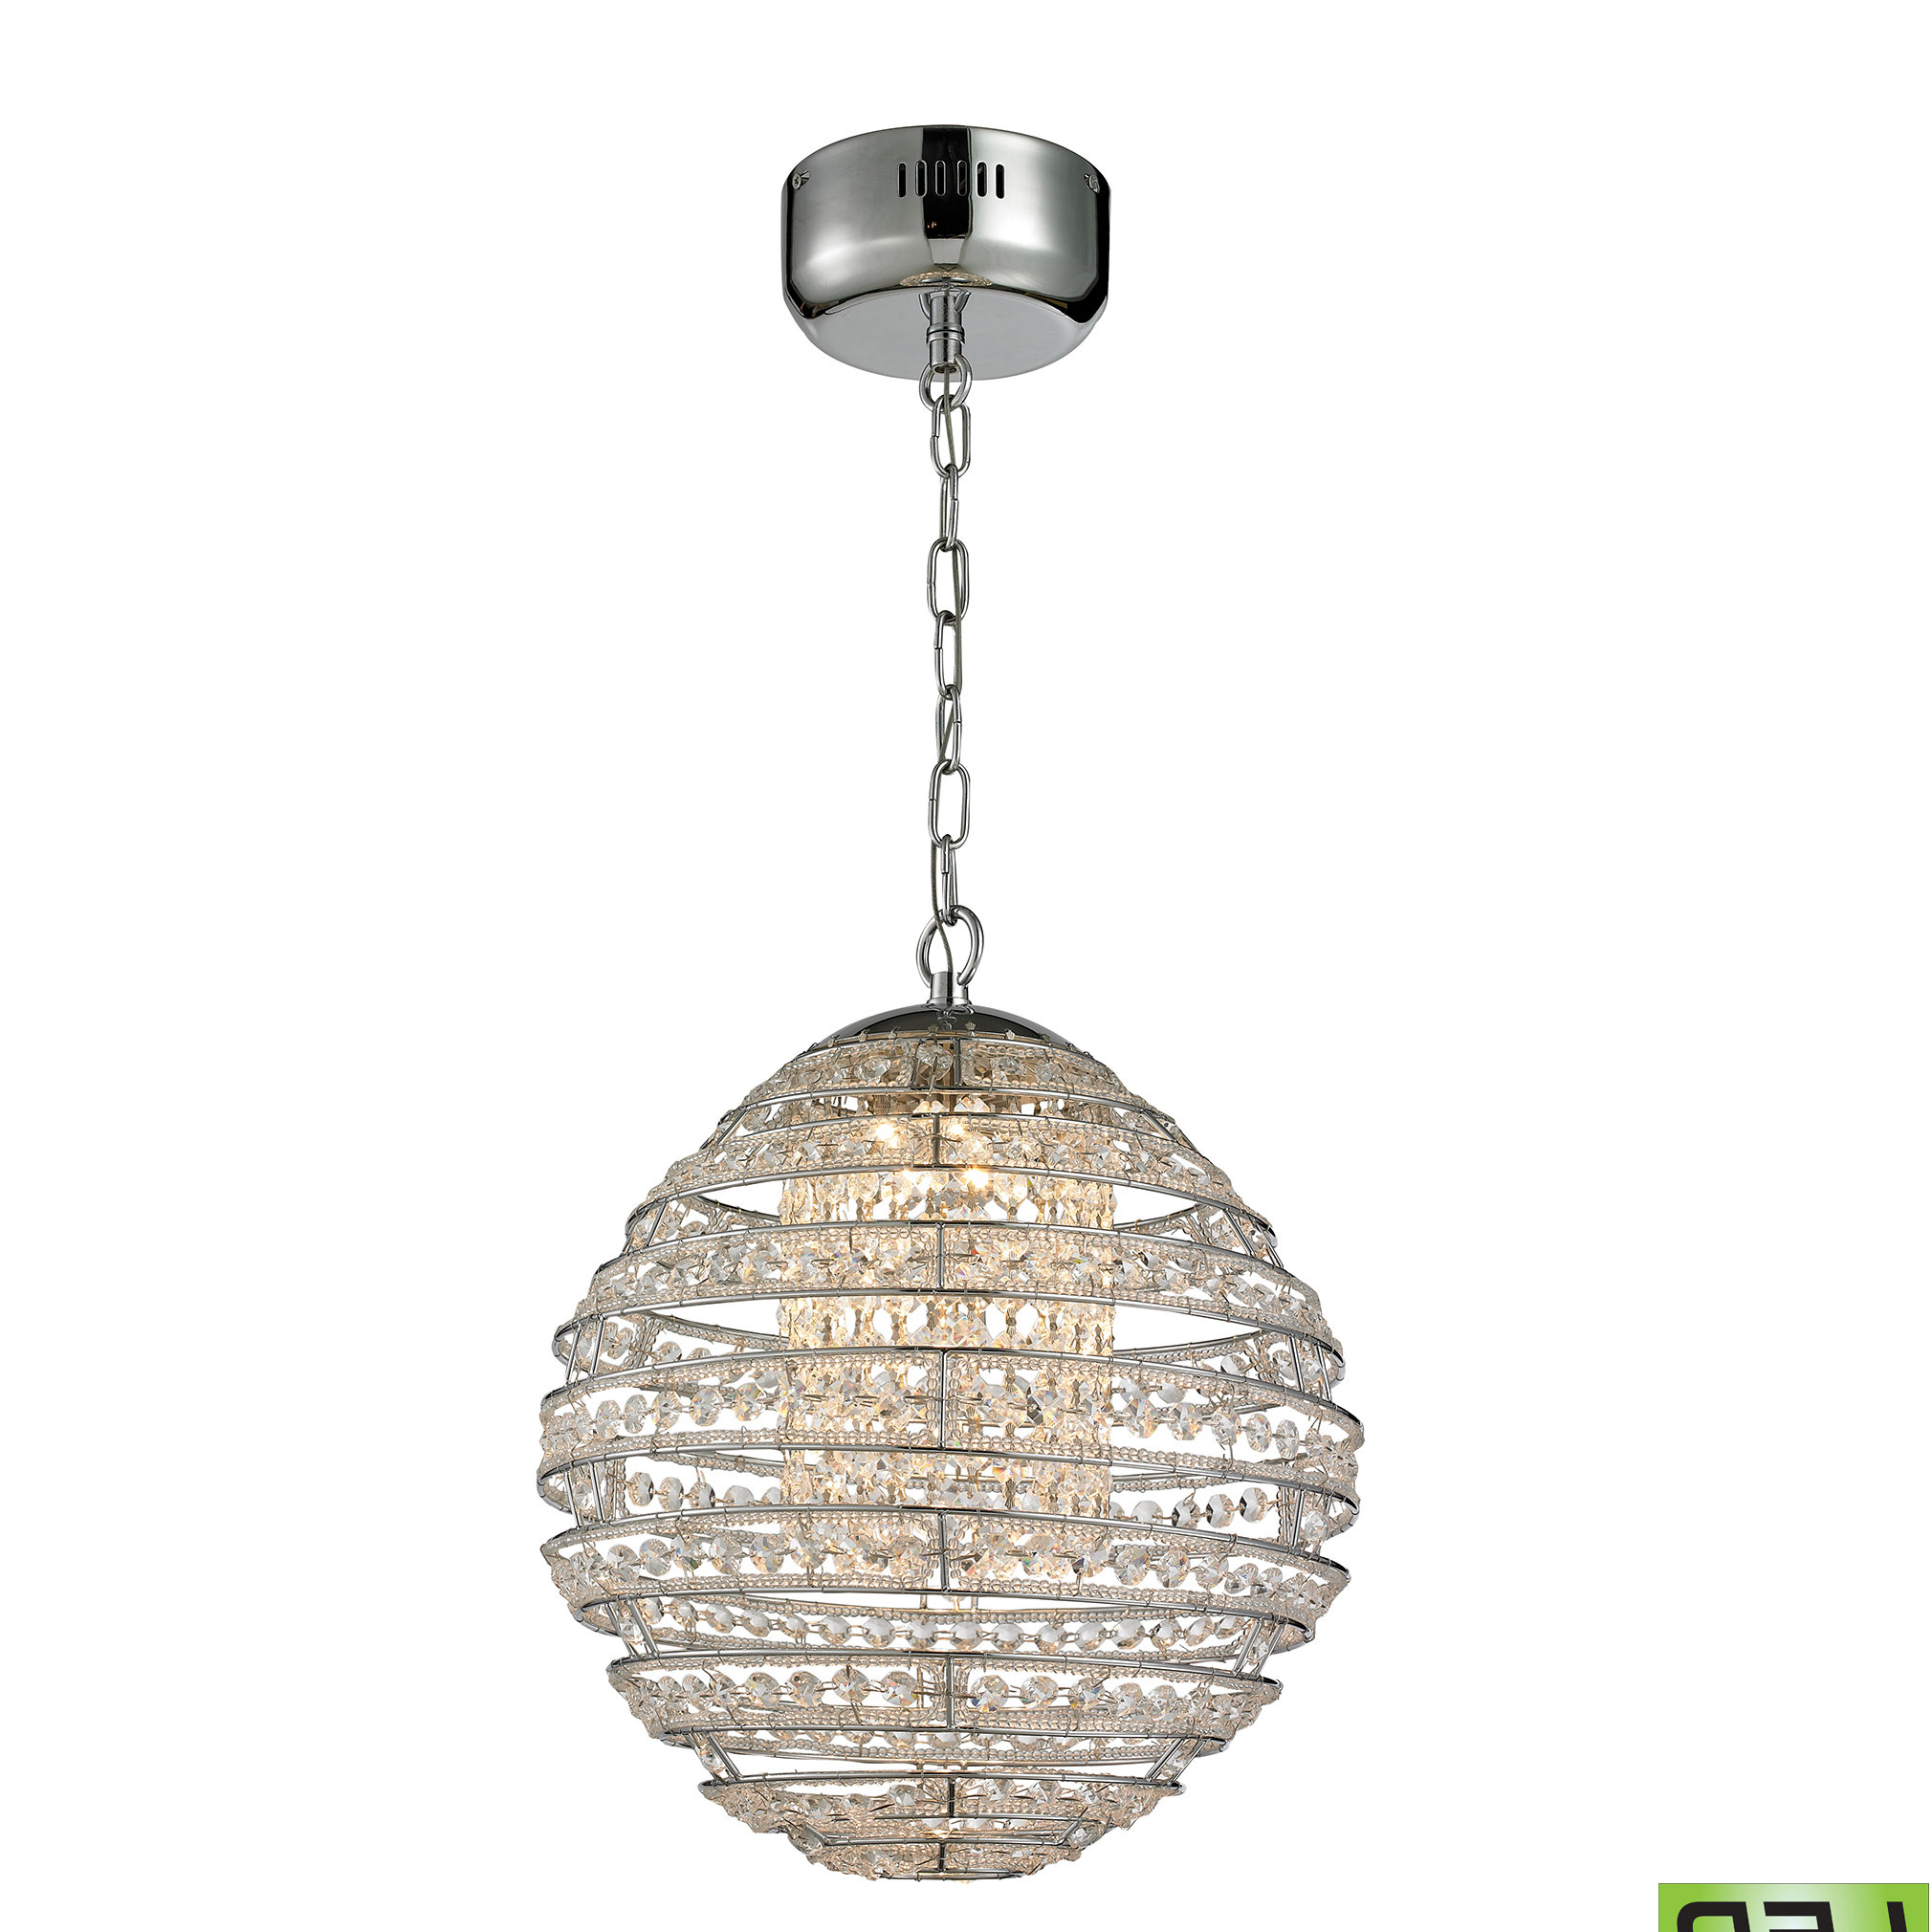 Hermione 1 Light Single Drum Pendants Intended For Famous Tussey 1 Light Led Single Globe Pendant (View 11 of 20)